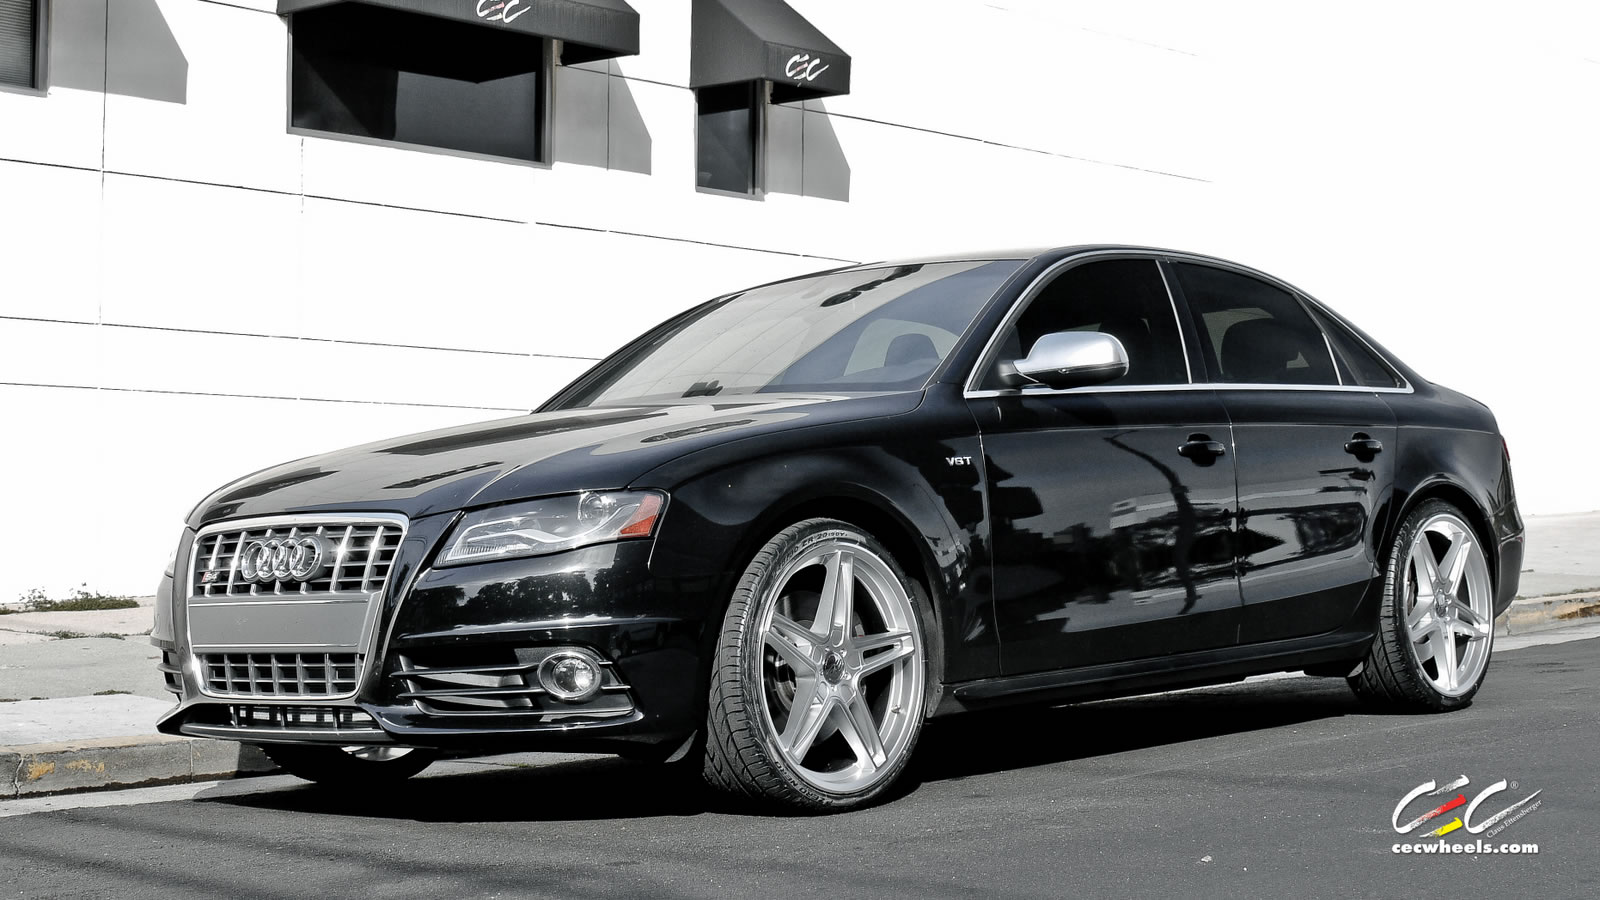 Pictures of audi s4 #2